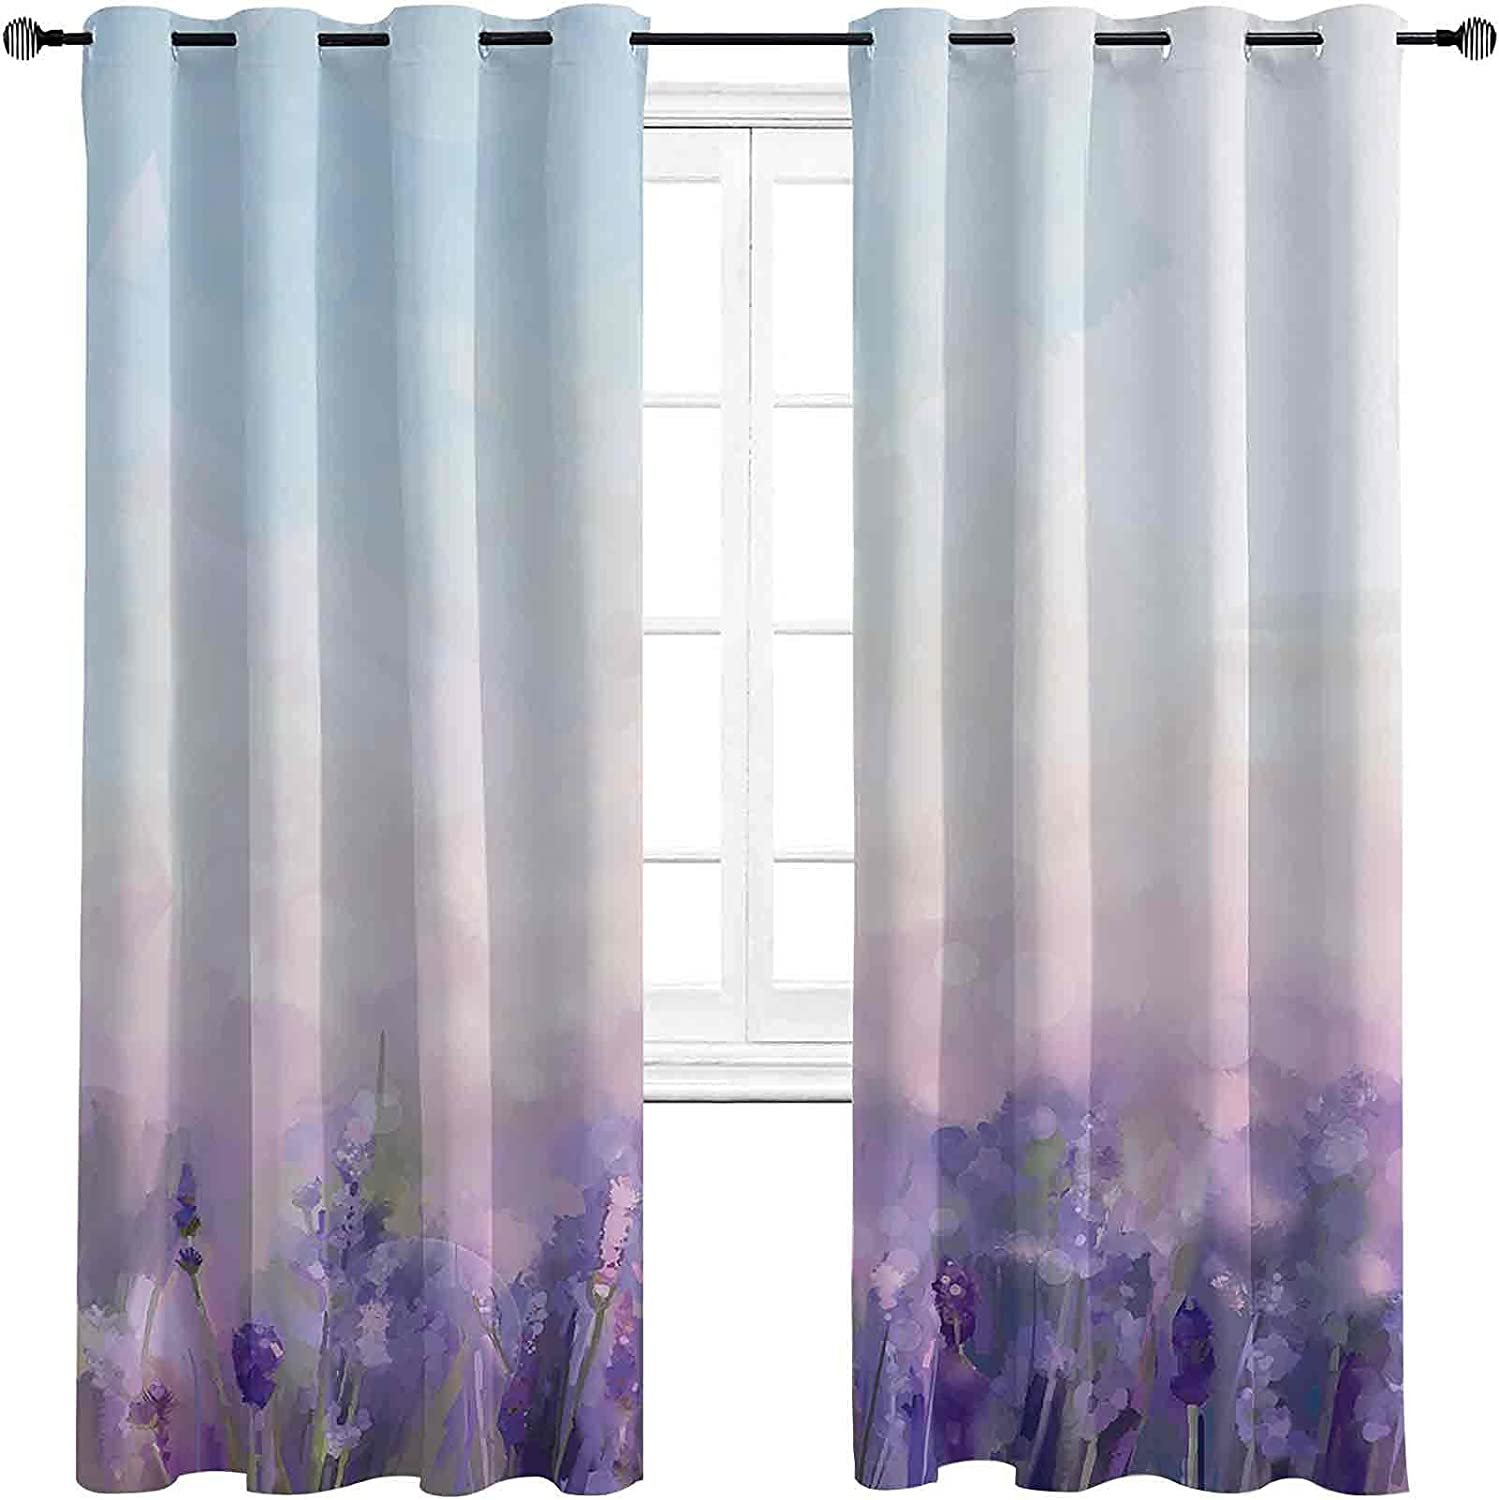 Lavender Regular store Mesa Mall Bedroom Blackout Curtains Oil Painting Flowers Style i